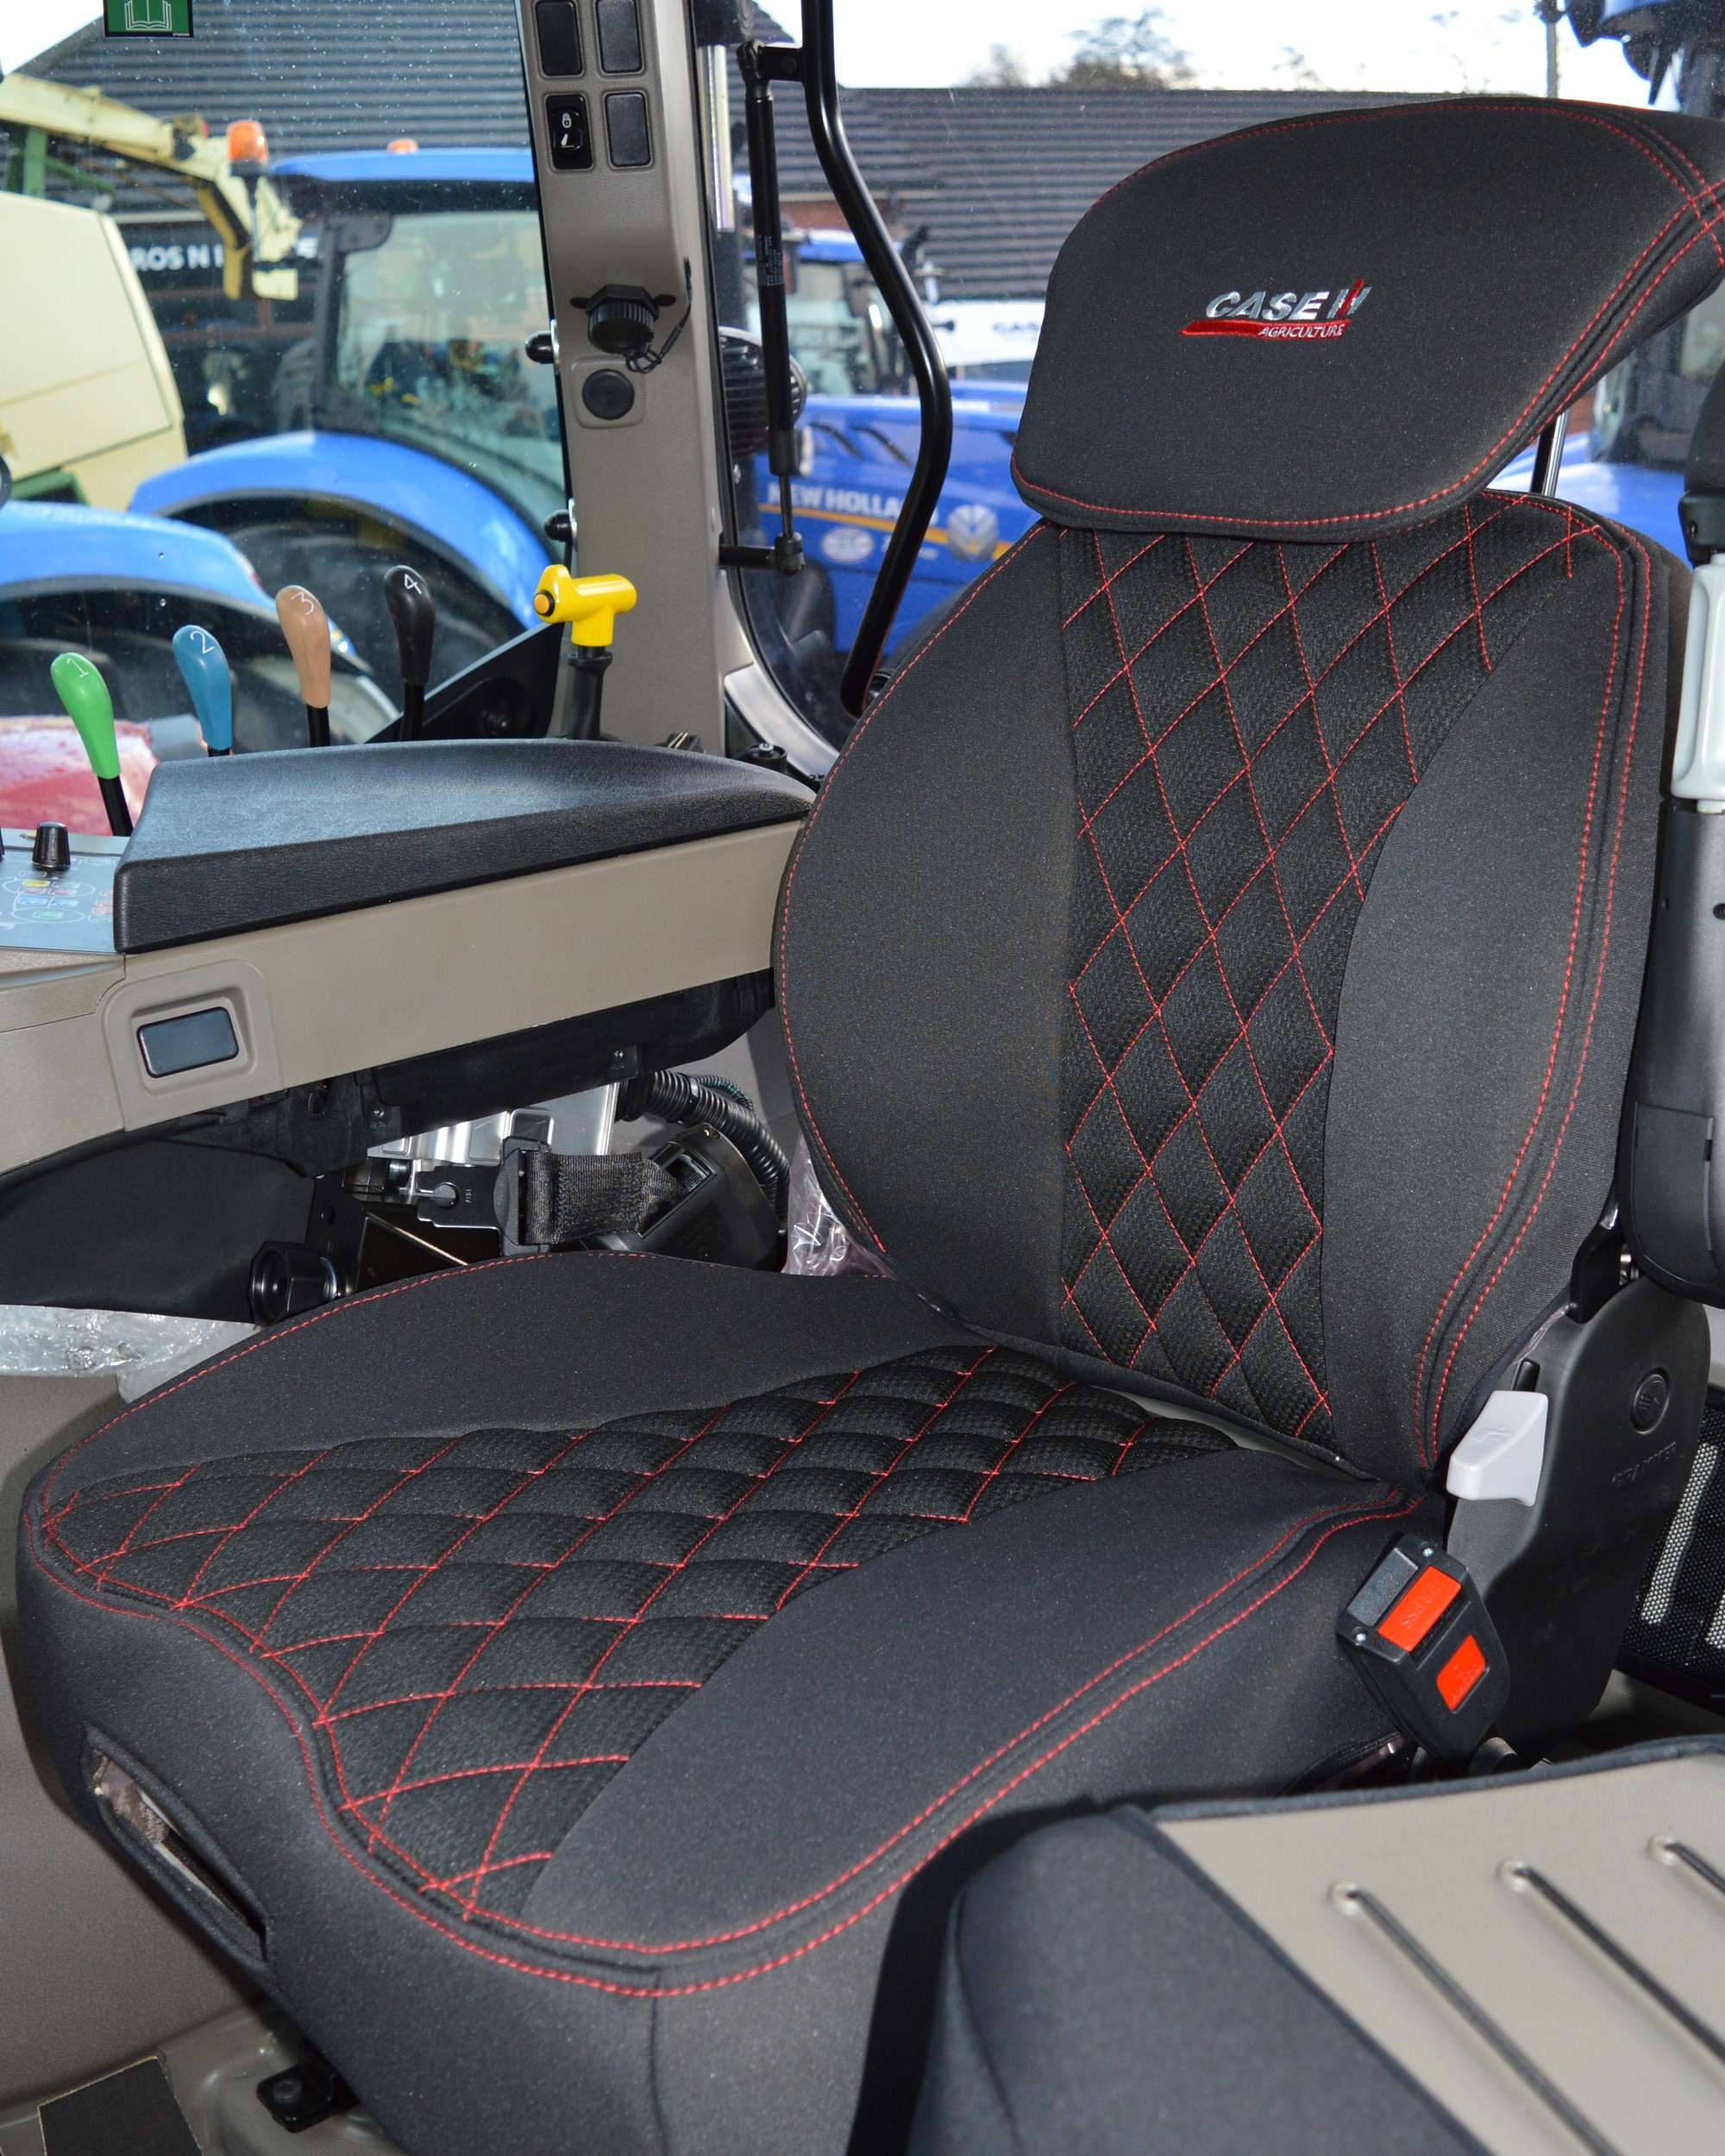 Case IH Tractor Tailored Seat Covers For Grammer Seat